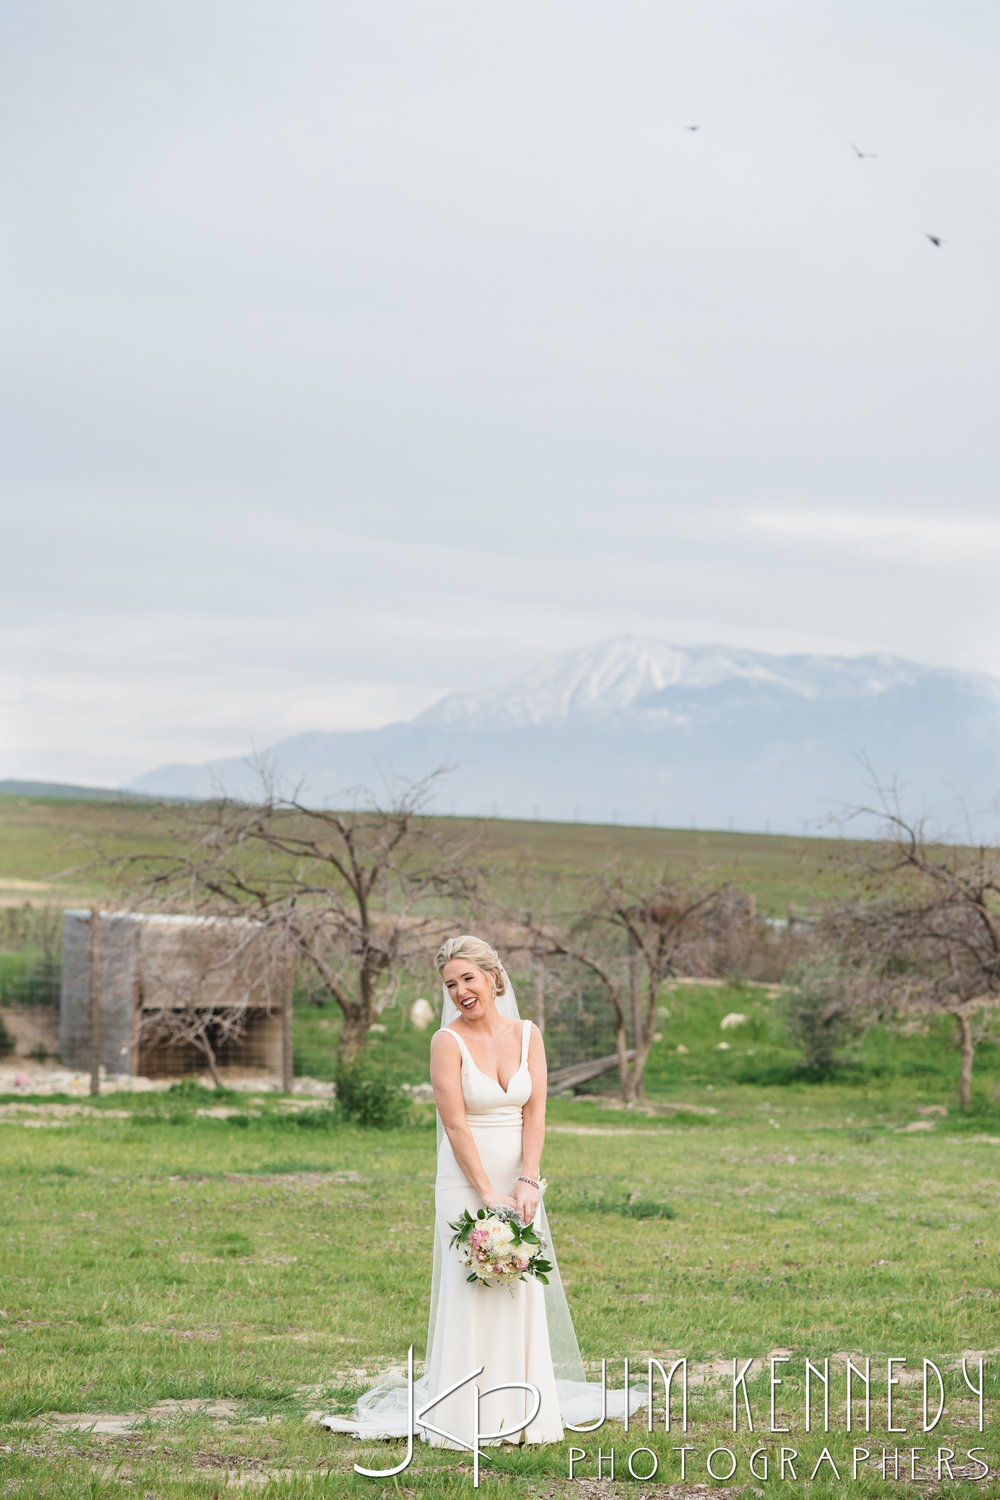 jim_kennedy_photographers_highland_springs_wedding_caitlyn_0138.jpg